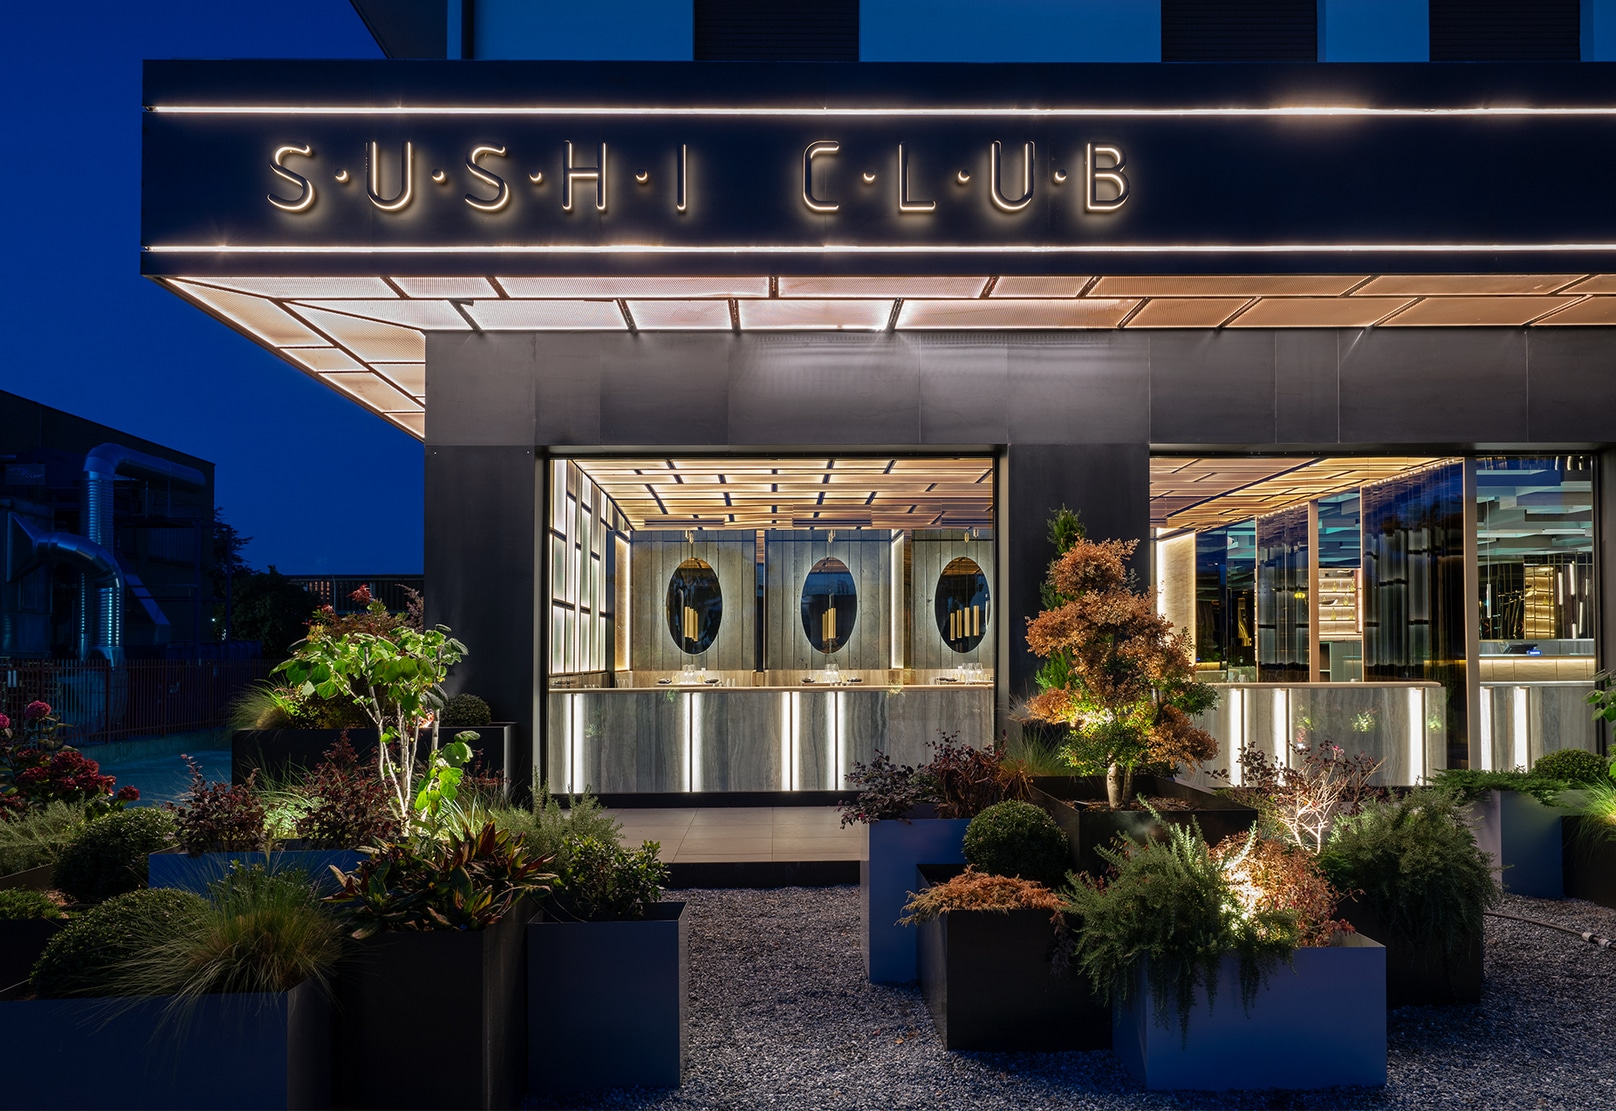 External view of Sushi Club, asian restaurant in Corbetta. Project by Lai Studio - Maurizio Lai Architects